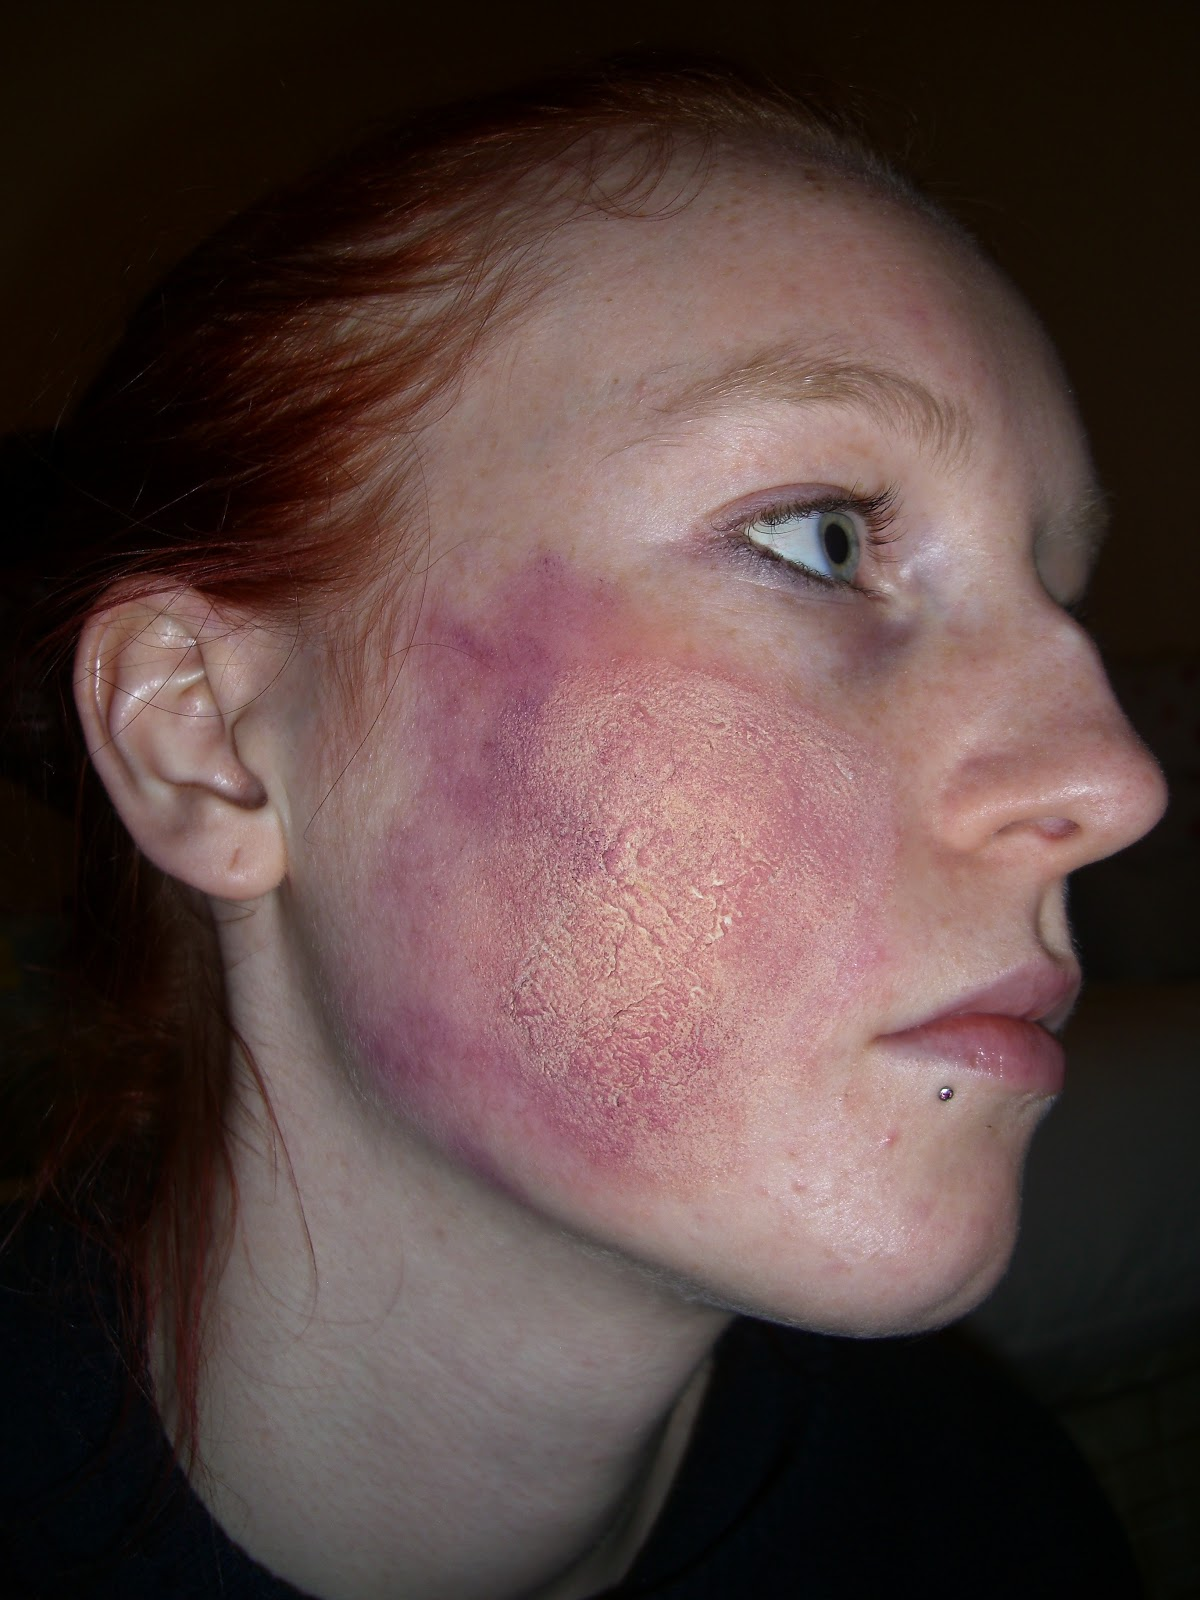 1000+ images about Grossies and gories bruises on ...